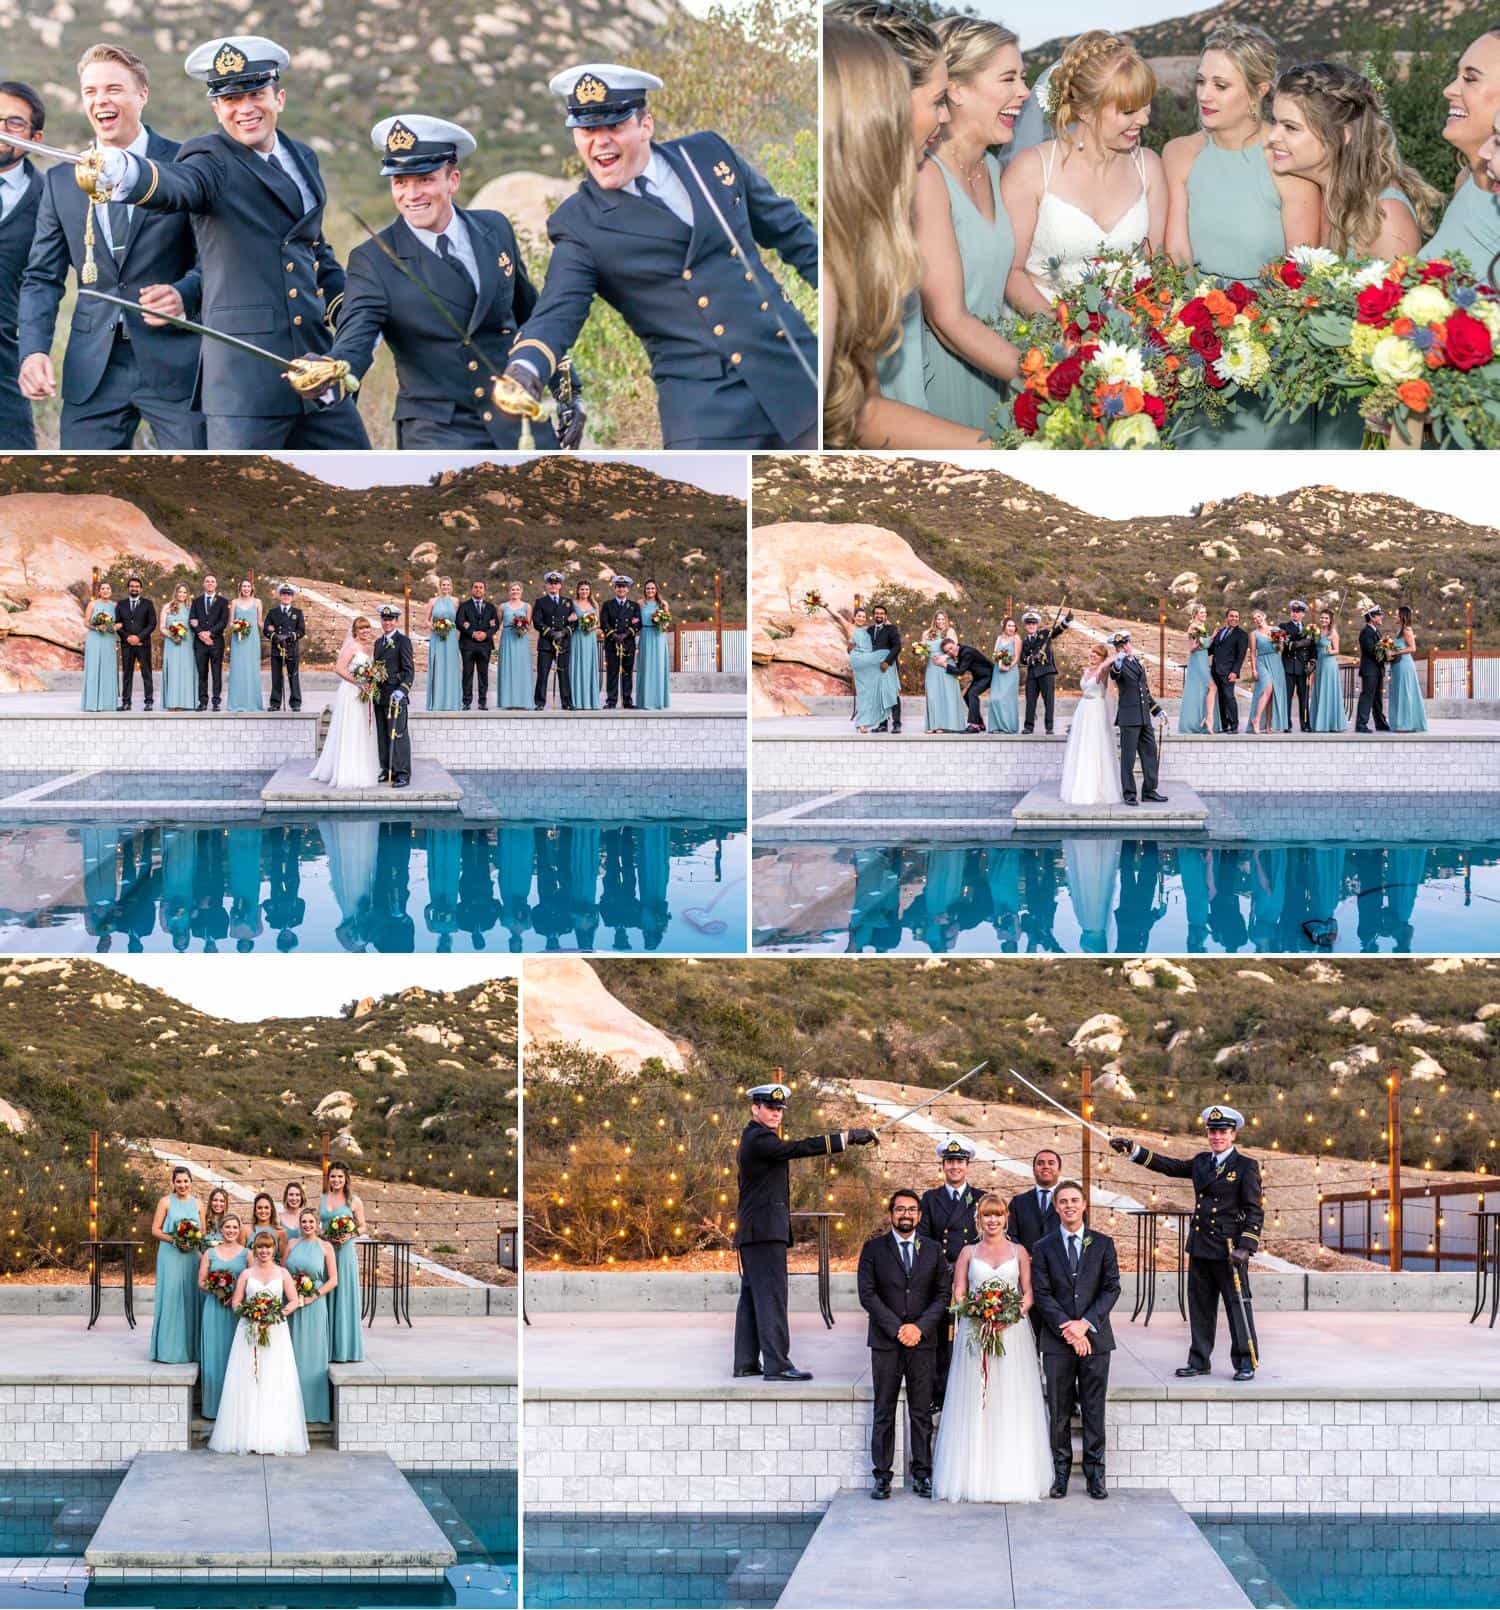 Bridal party portraits in navy uniform.